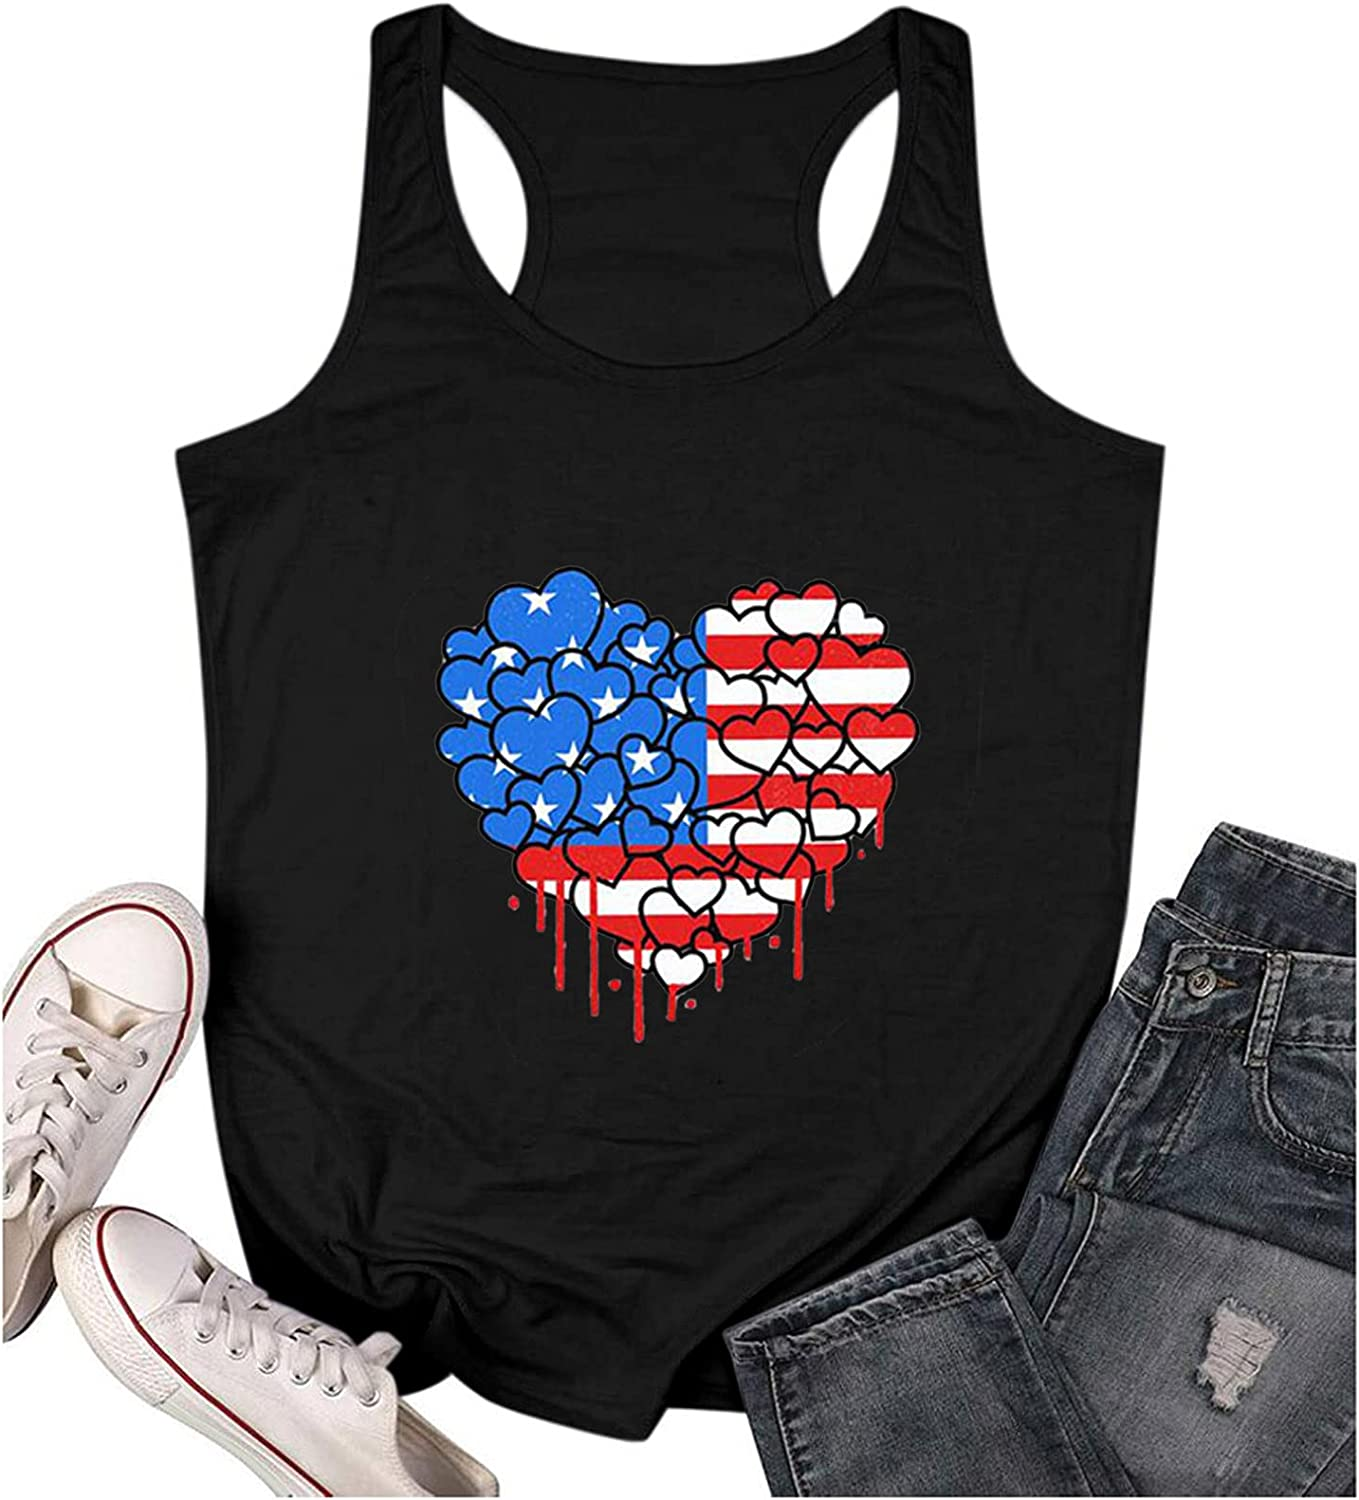 Aukbays Womens Summer Tops 4th of July Tank Tops for Women Sleeveless Loveheart US Flag Camisole Graphic Tees Shirts